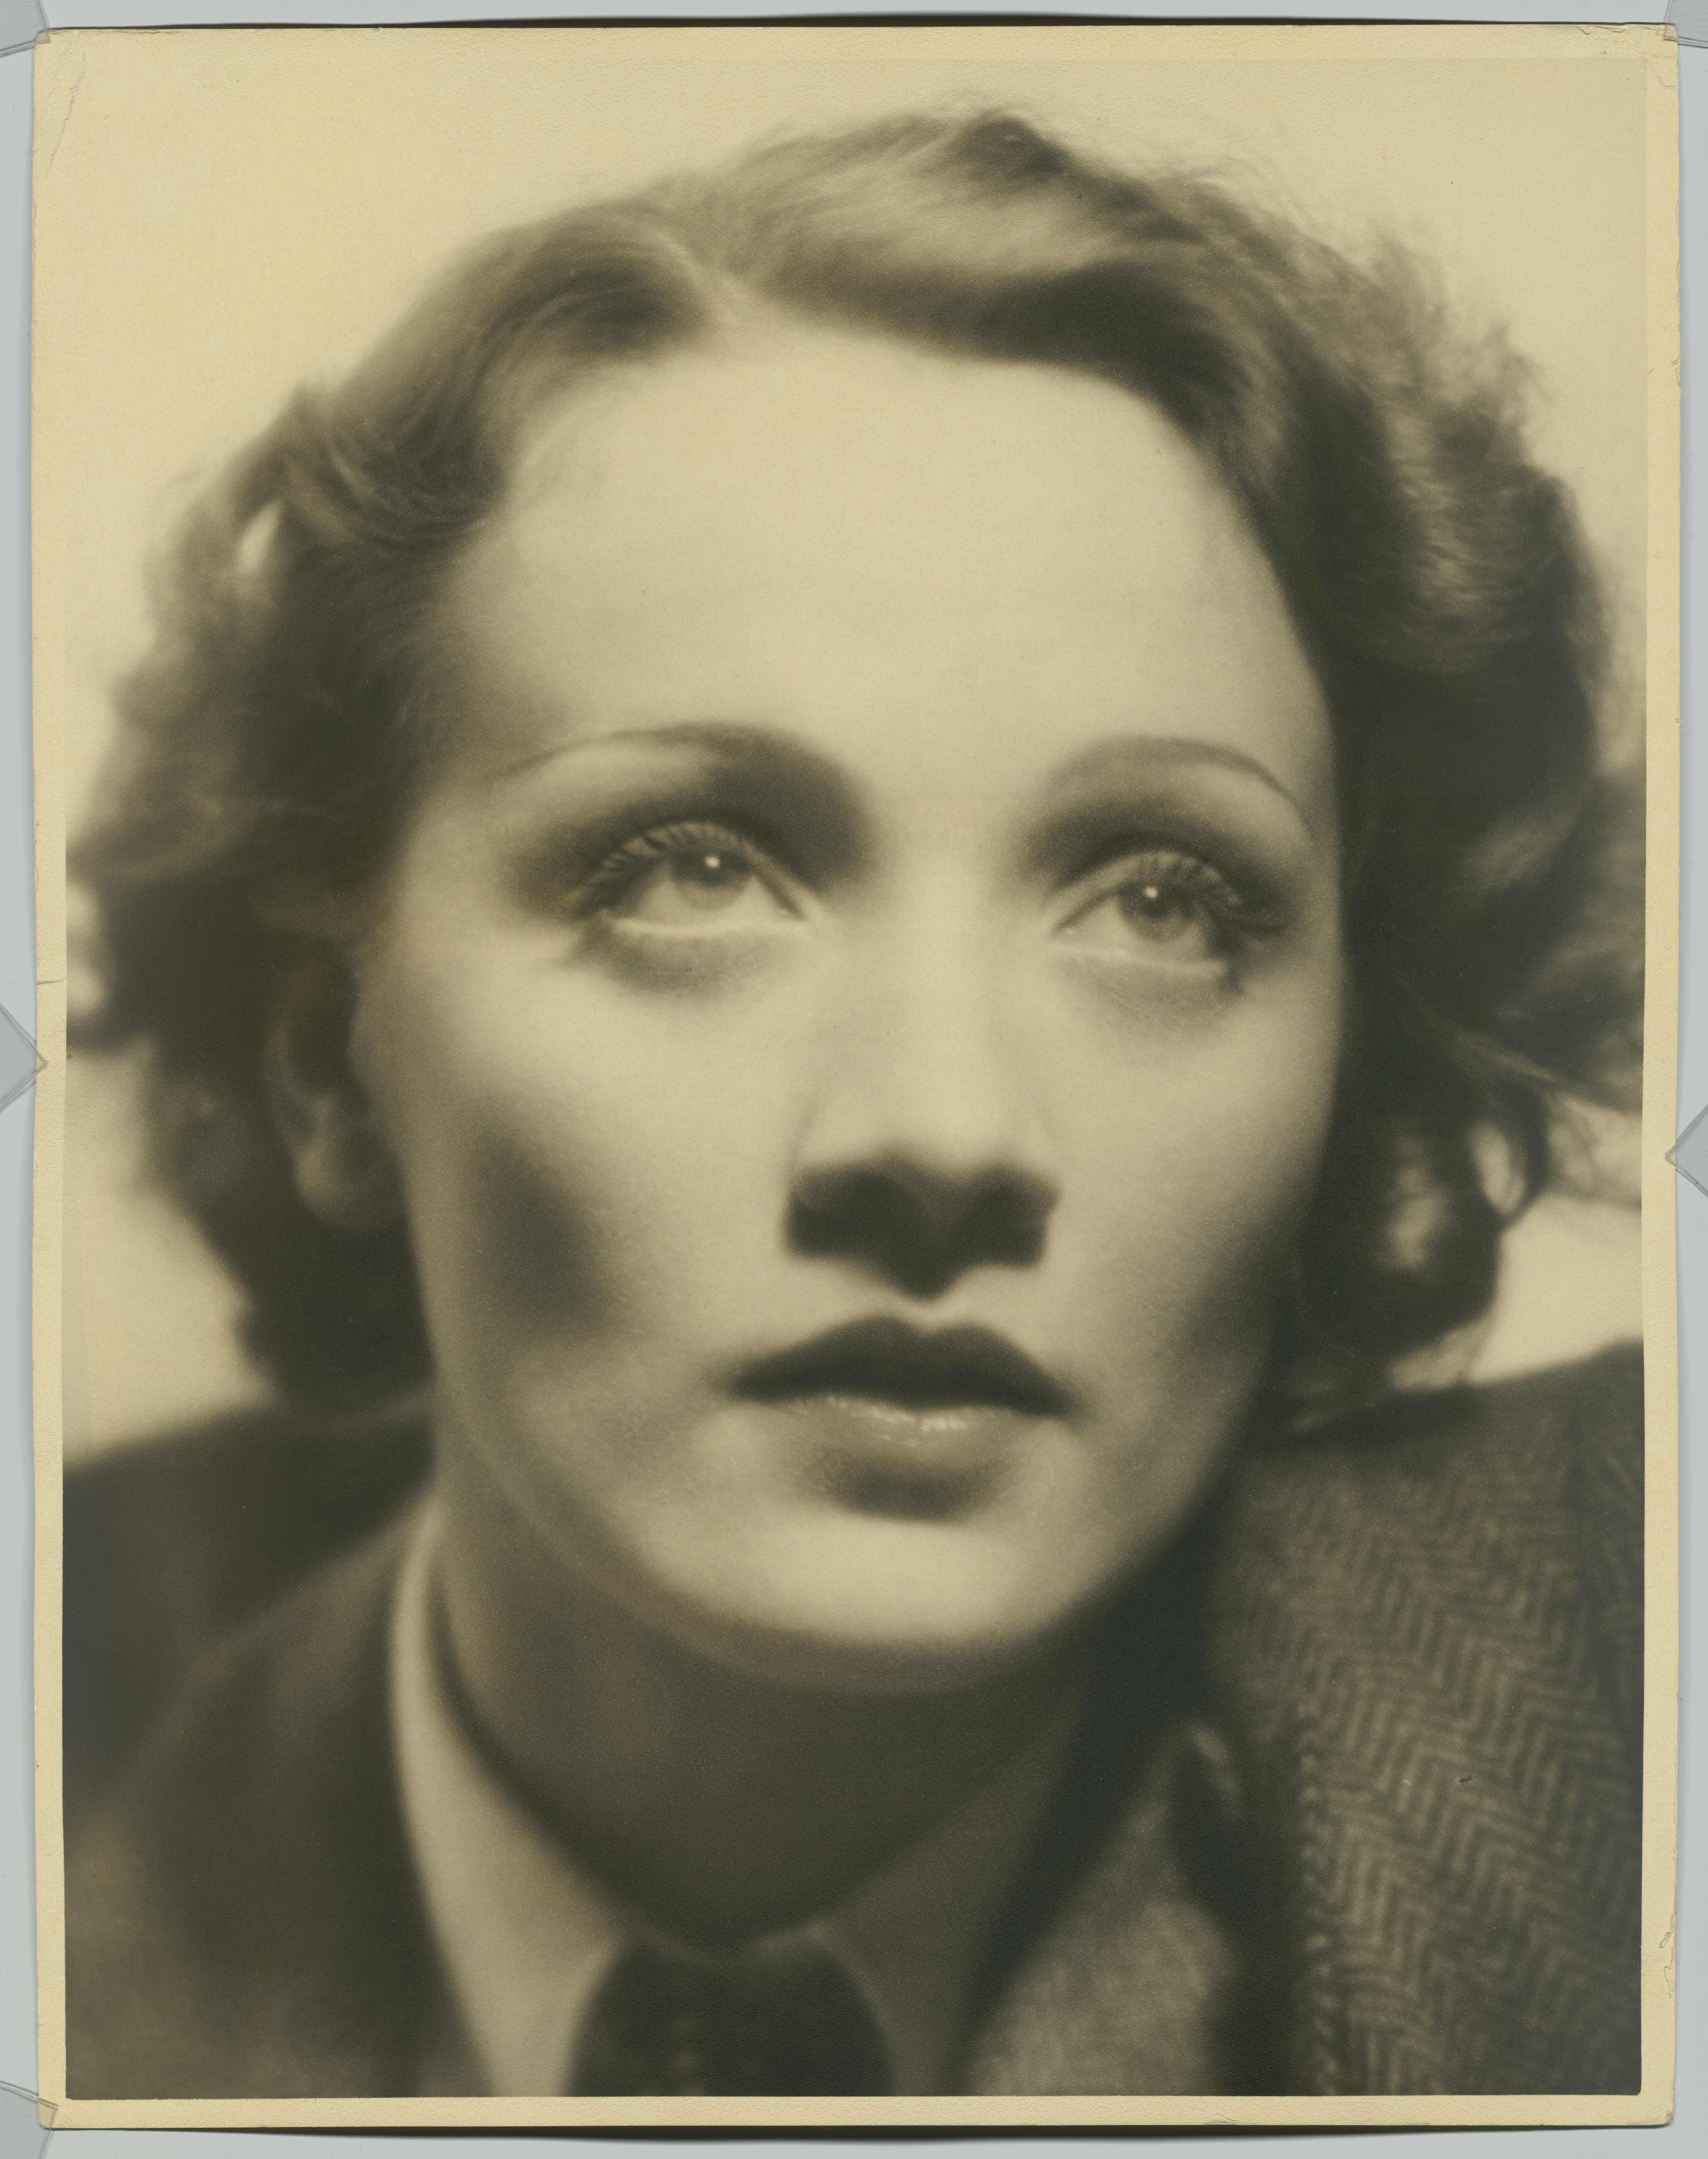 Portrait photo of Marlene Dietrich, Photo: Eugene Robert Richee